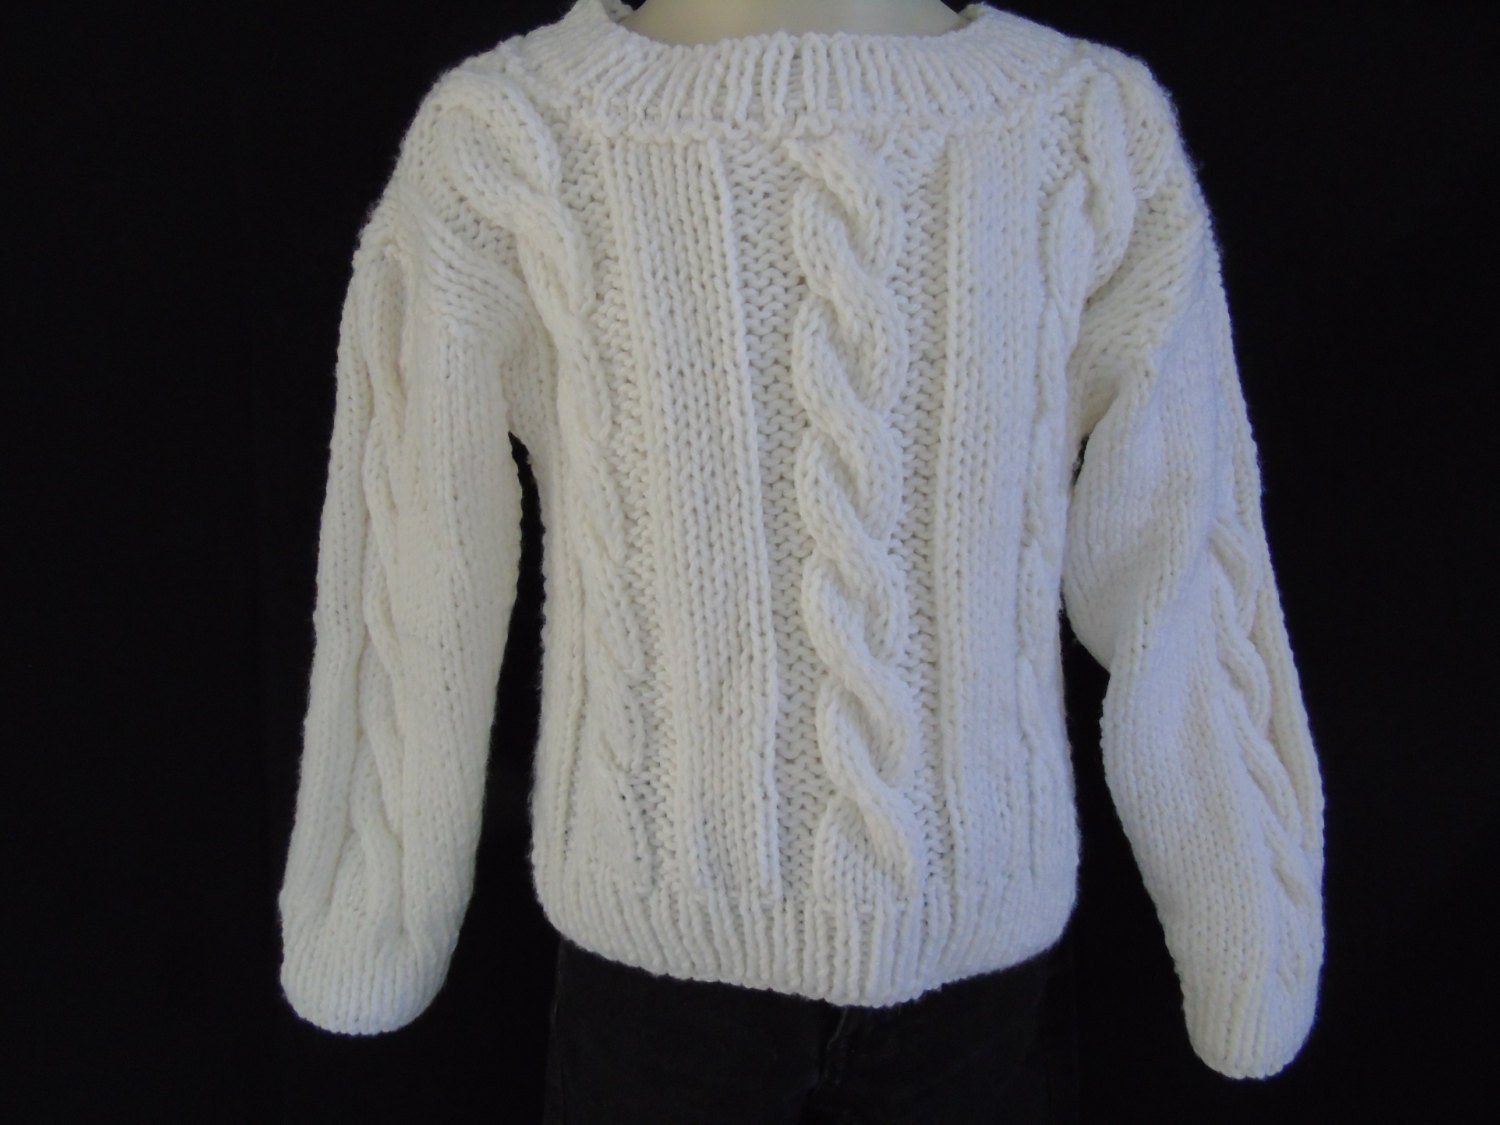 "Elegant Child S Cable Knit Cardigan Pattern Long Sweater Jacket Cable Knit Sweater Pattern Of New Lace & Cable Sweater Dk Wool 30"" 40"" Knitting Cable Knit Sweater Pattern"